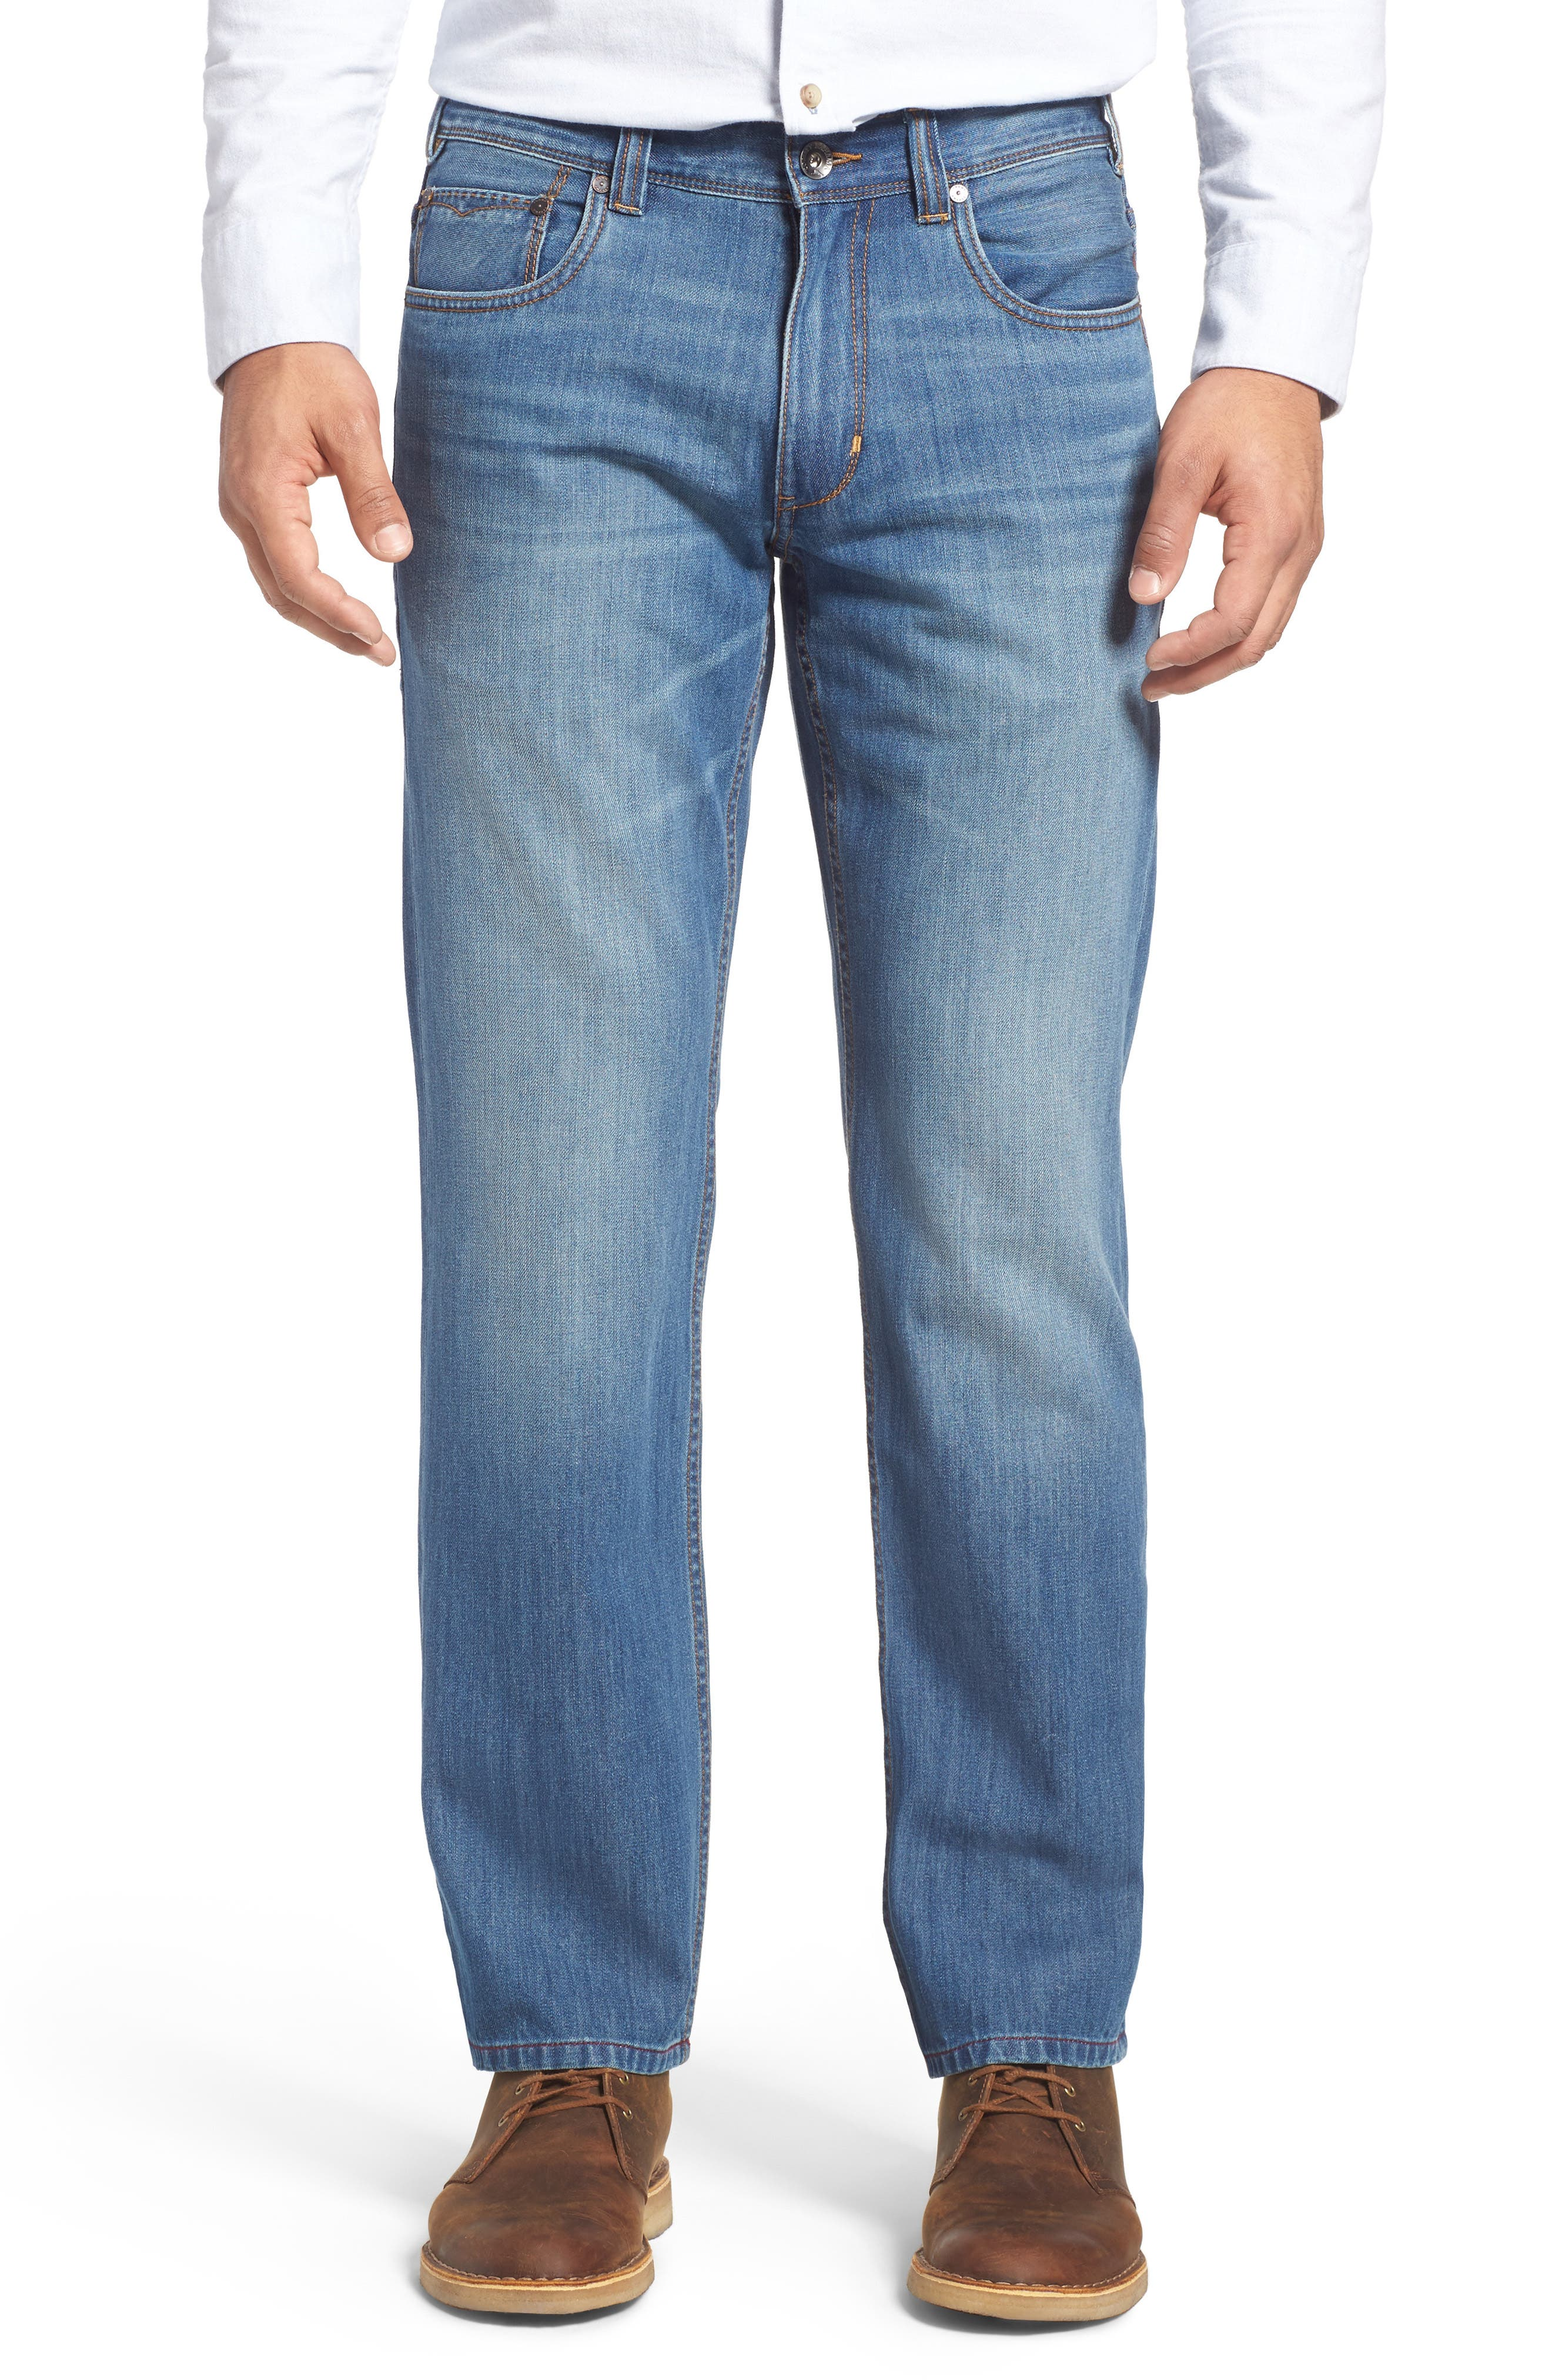 Barbados Straight Leg Jeans,                         Main,                         color, Light Indigo Wash